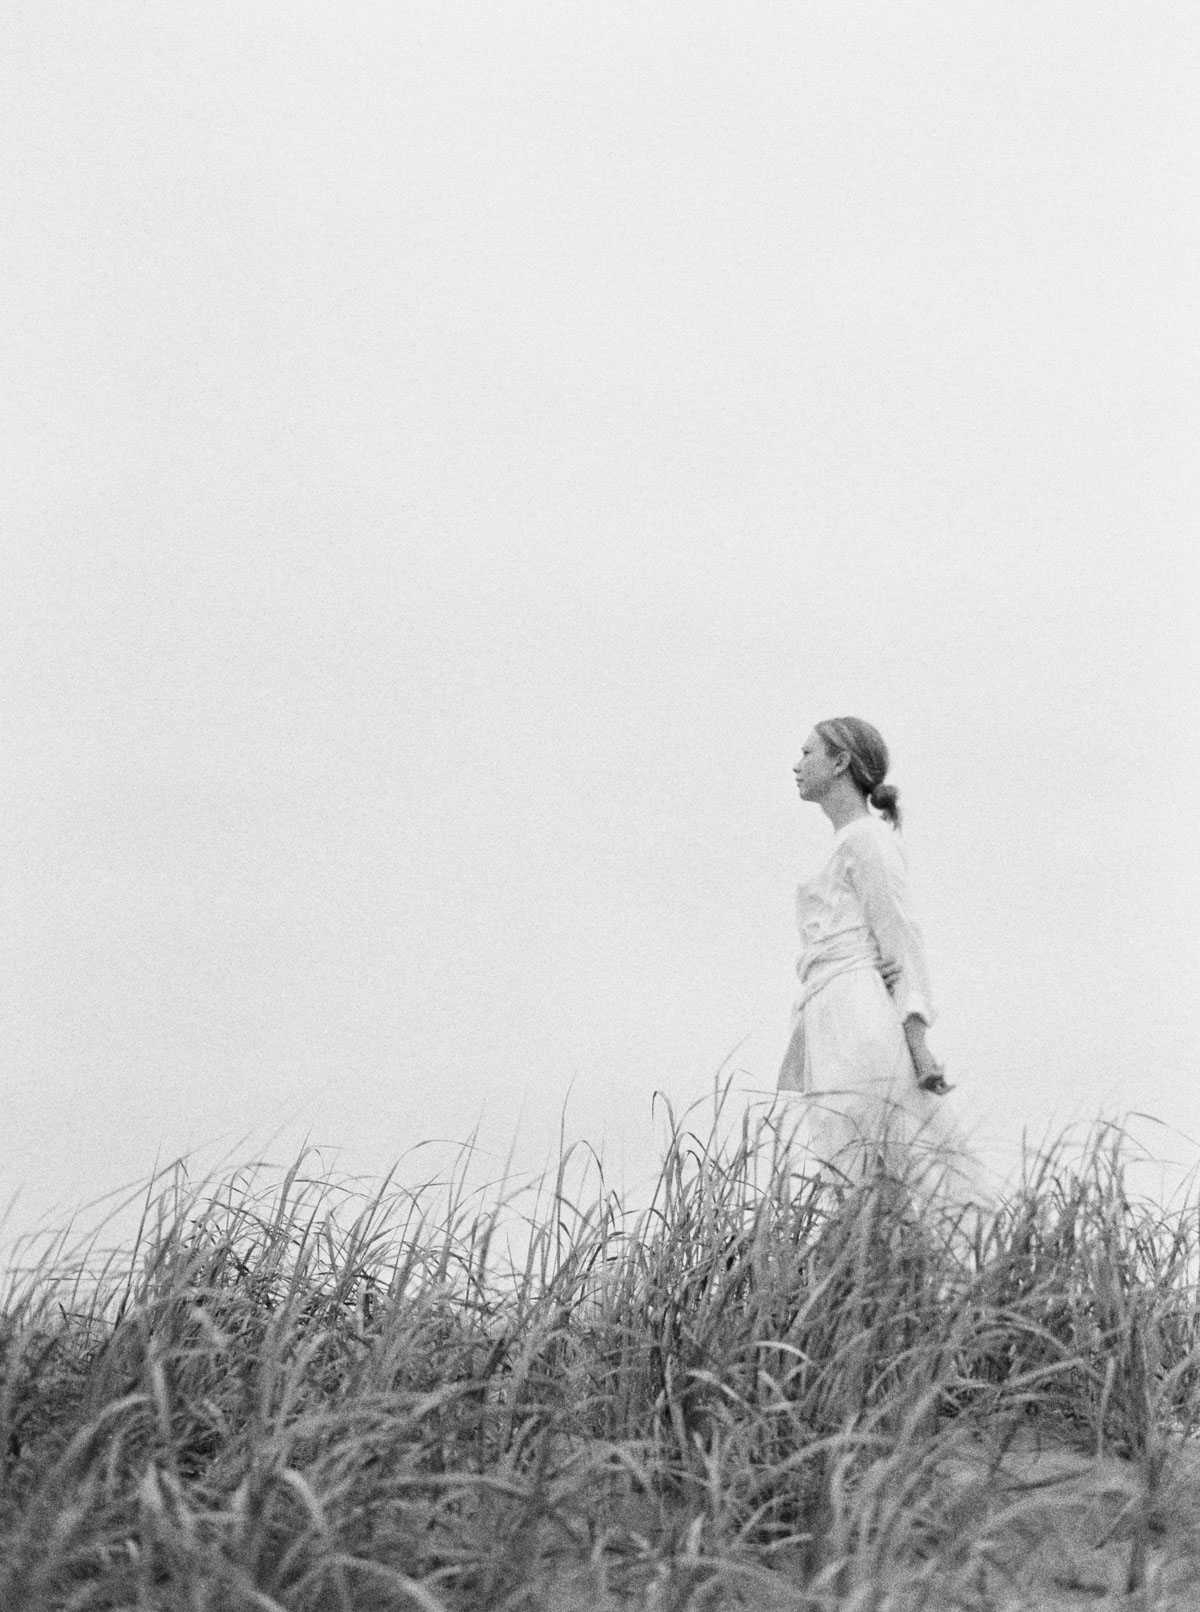 Portrait of woman in white dress near sand dunes